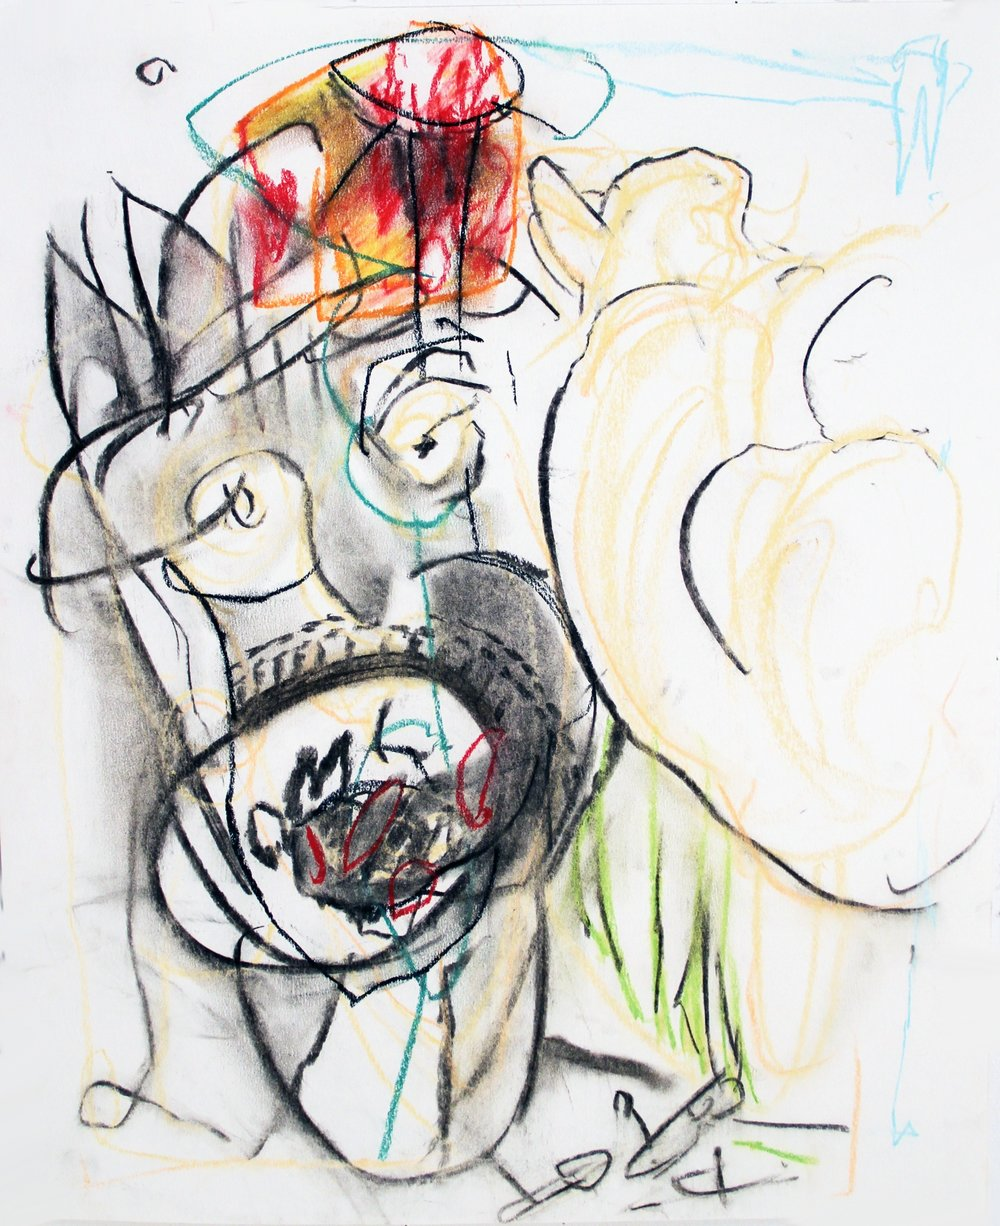 COLD TURKEY  Mixed Media on Paper 17 x 14 inches (43 x 36 cm)